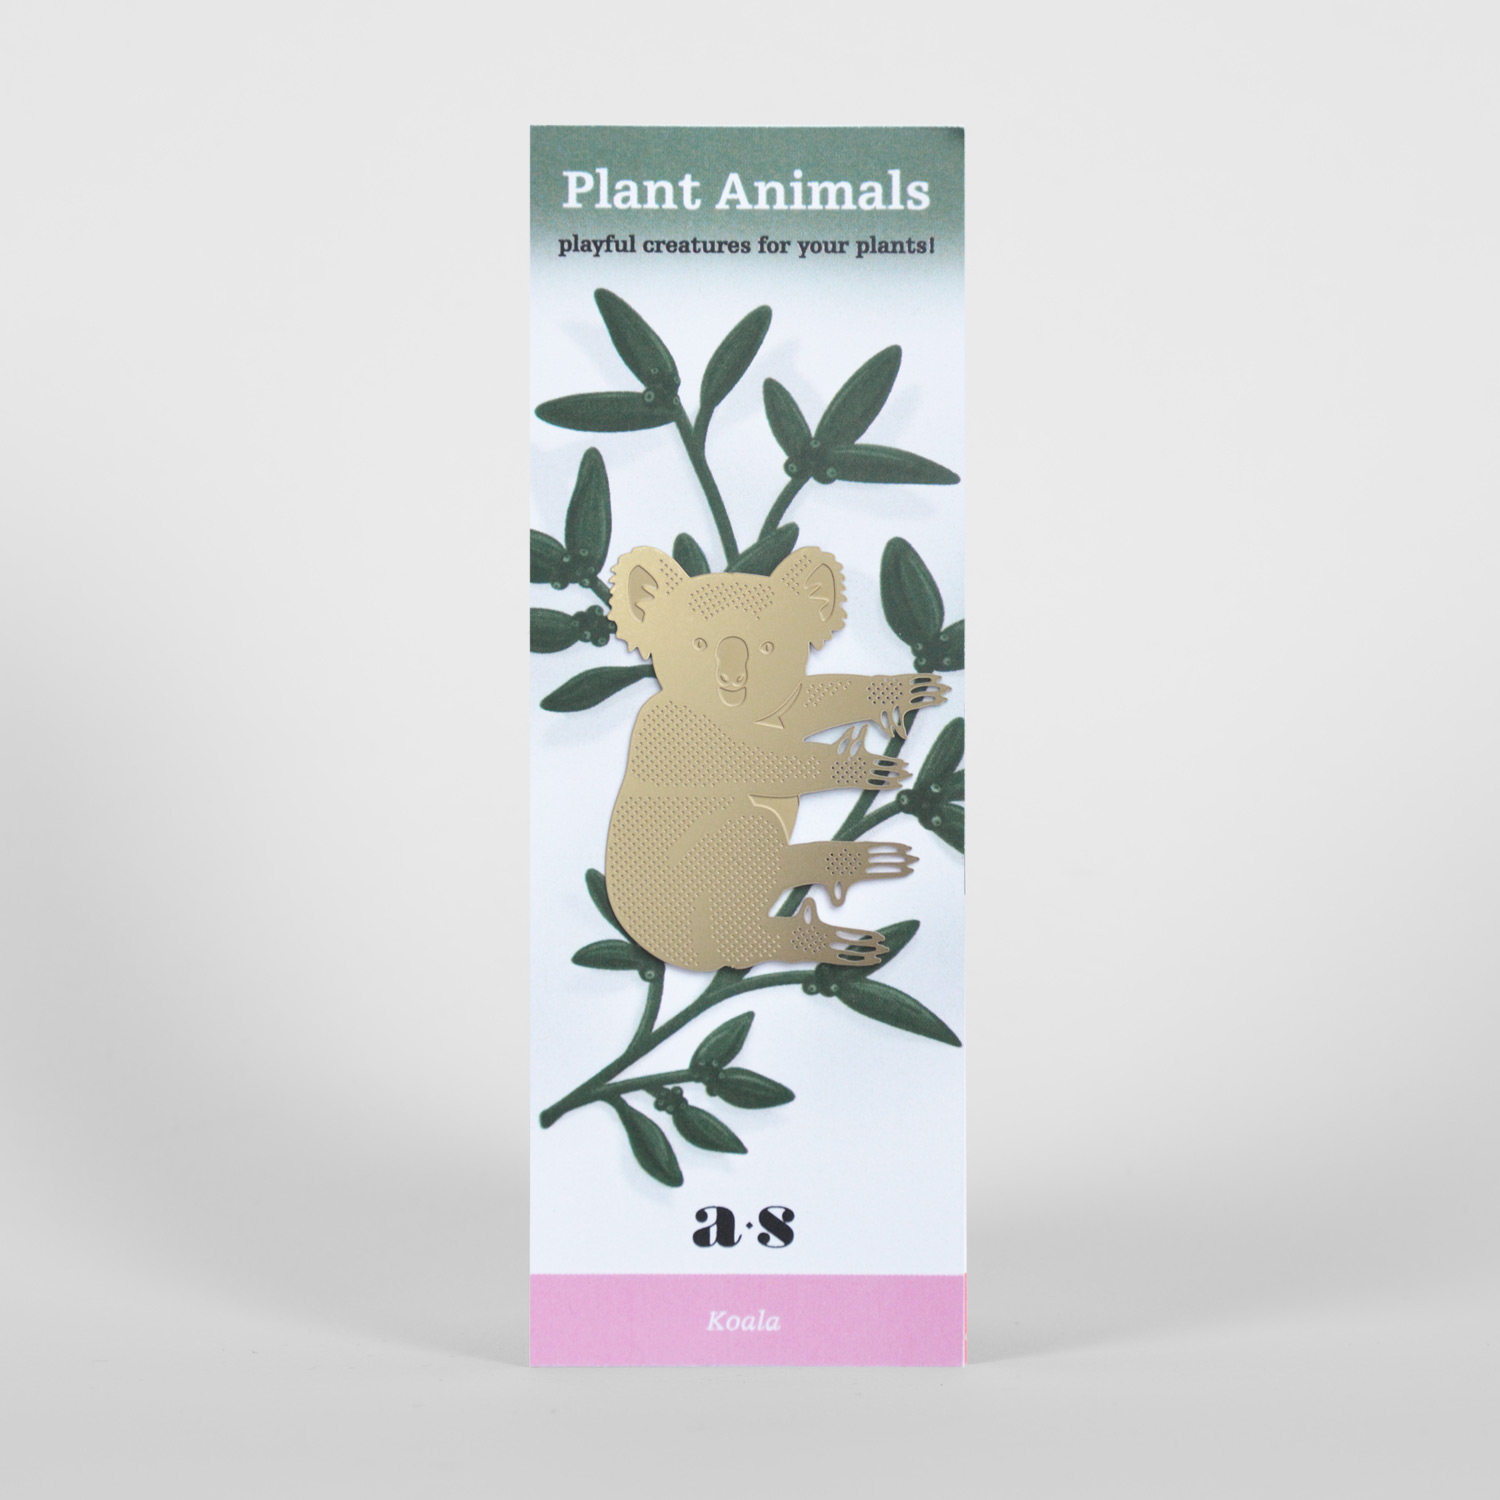 koala-packaging.jpg